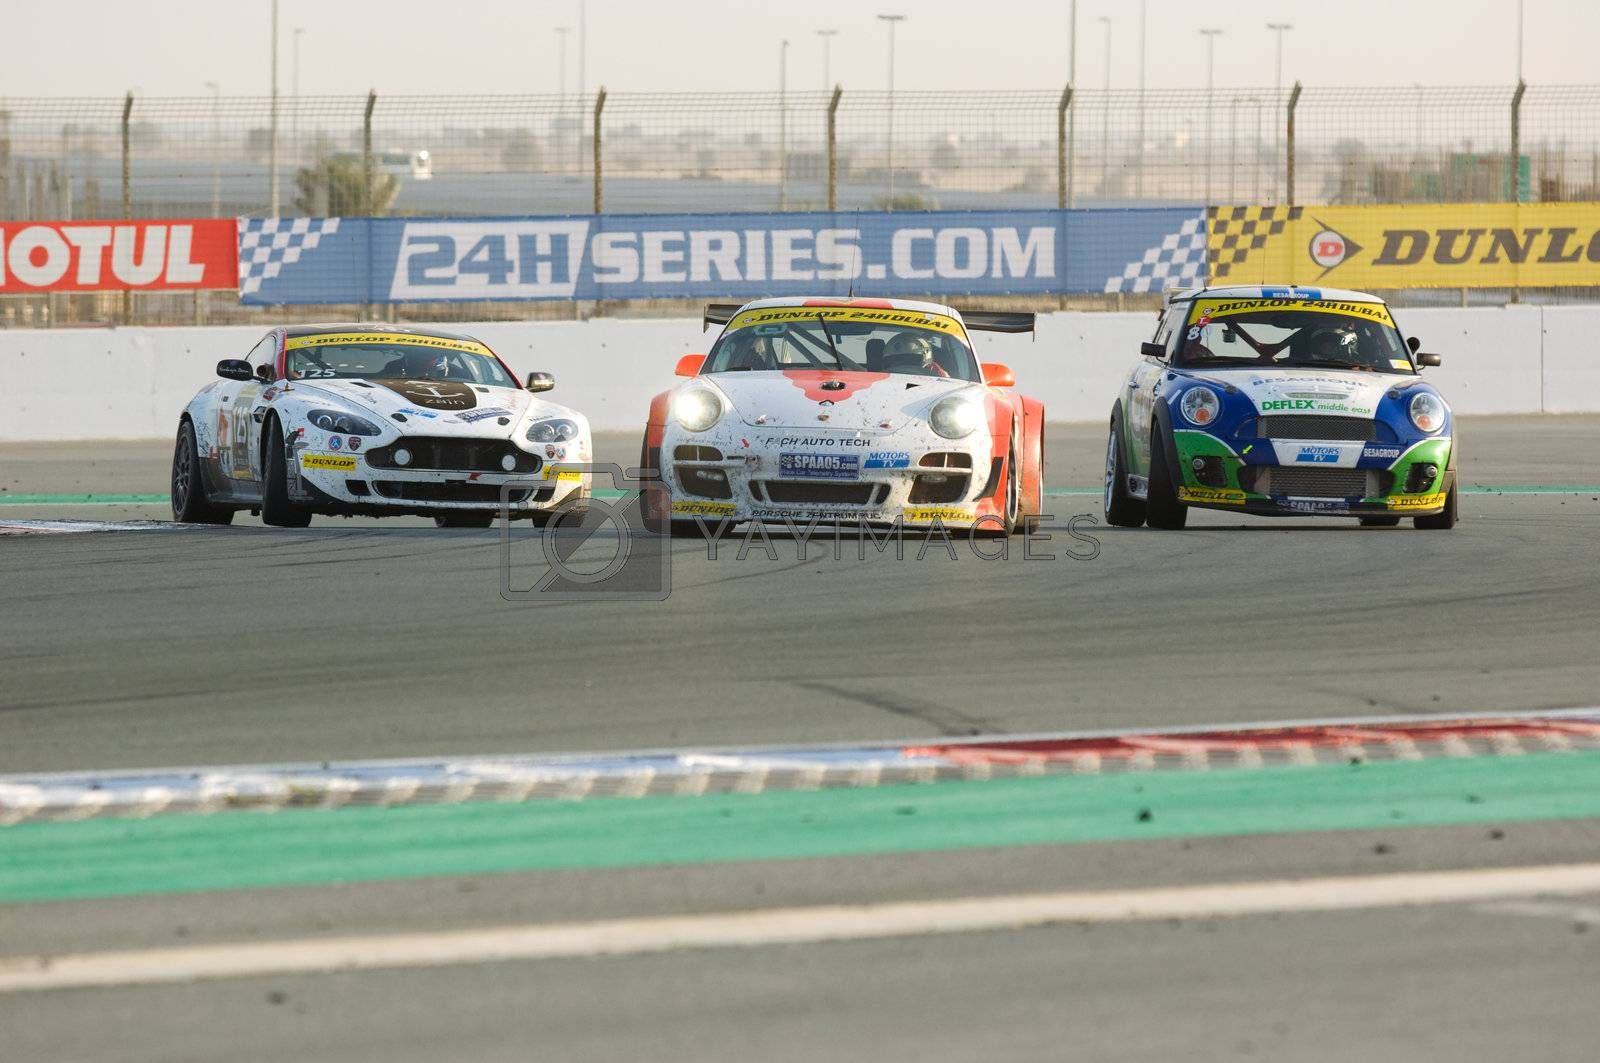 DUBAI - JANUARY 14: Aston Martin Vantage, Porsche 997 and BMW MIni fighting for positions during the 2012 Dunlop 24 Hour Race at Dubai Autodrome on January 14, 2012.